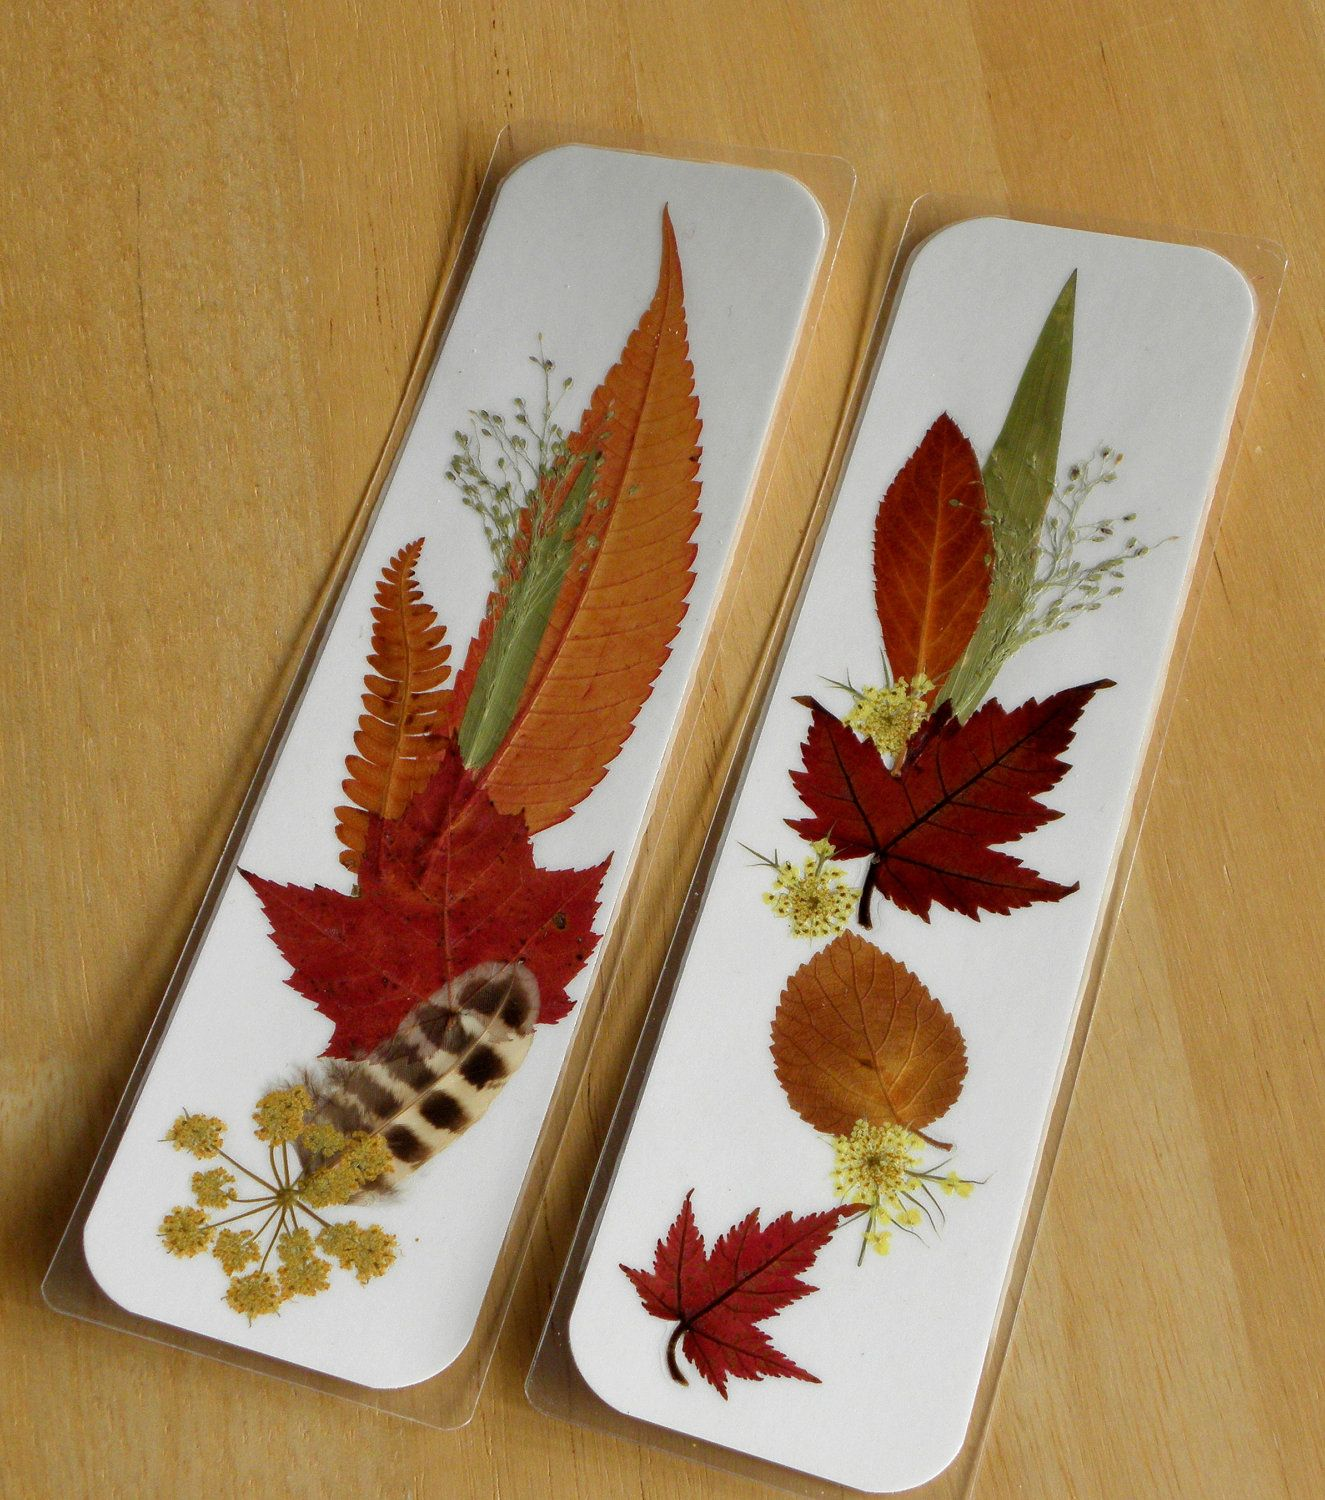 Pressed flower craft ideas hello my invisible friend for Dried flowers for crafts